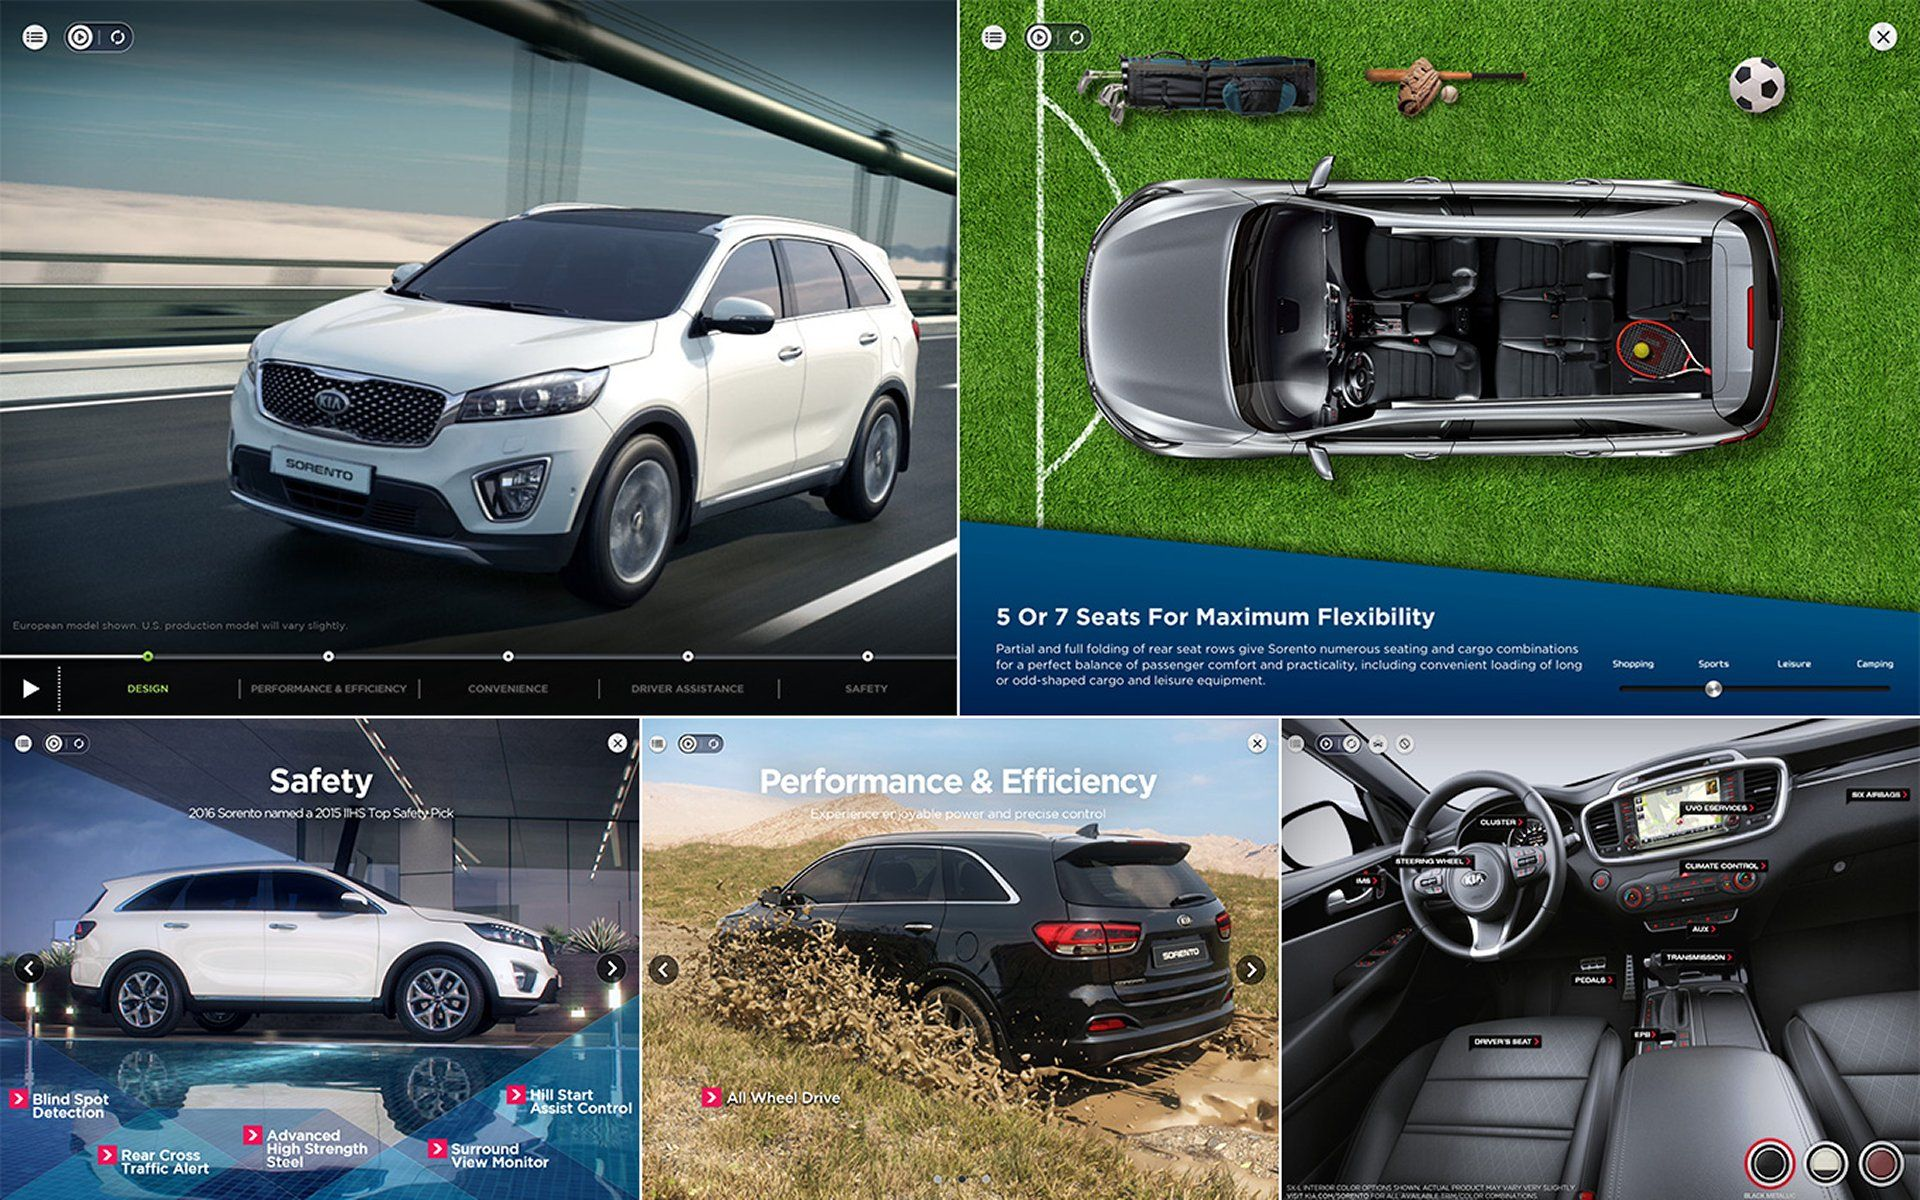 Interact And Customize The Kia Sorento Of Your Dreams With The